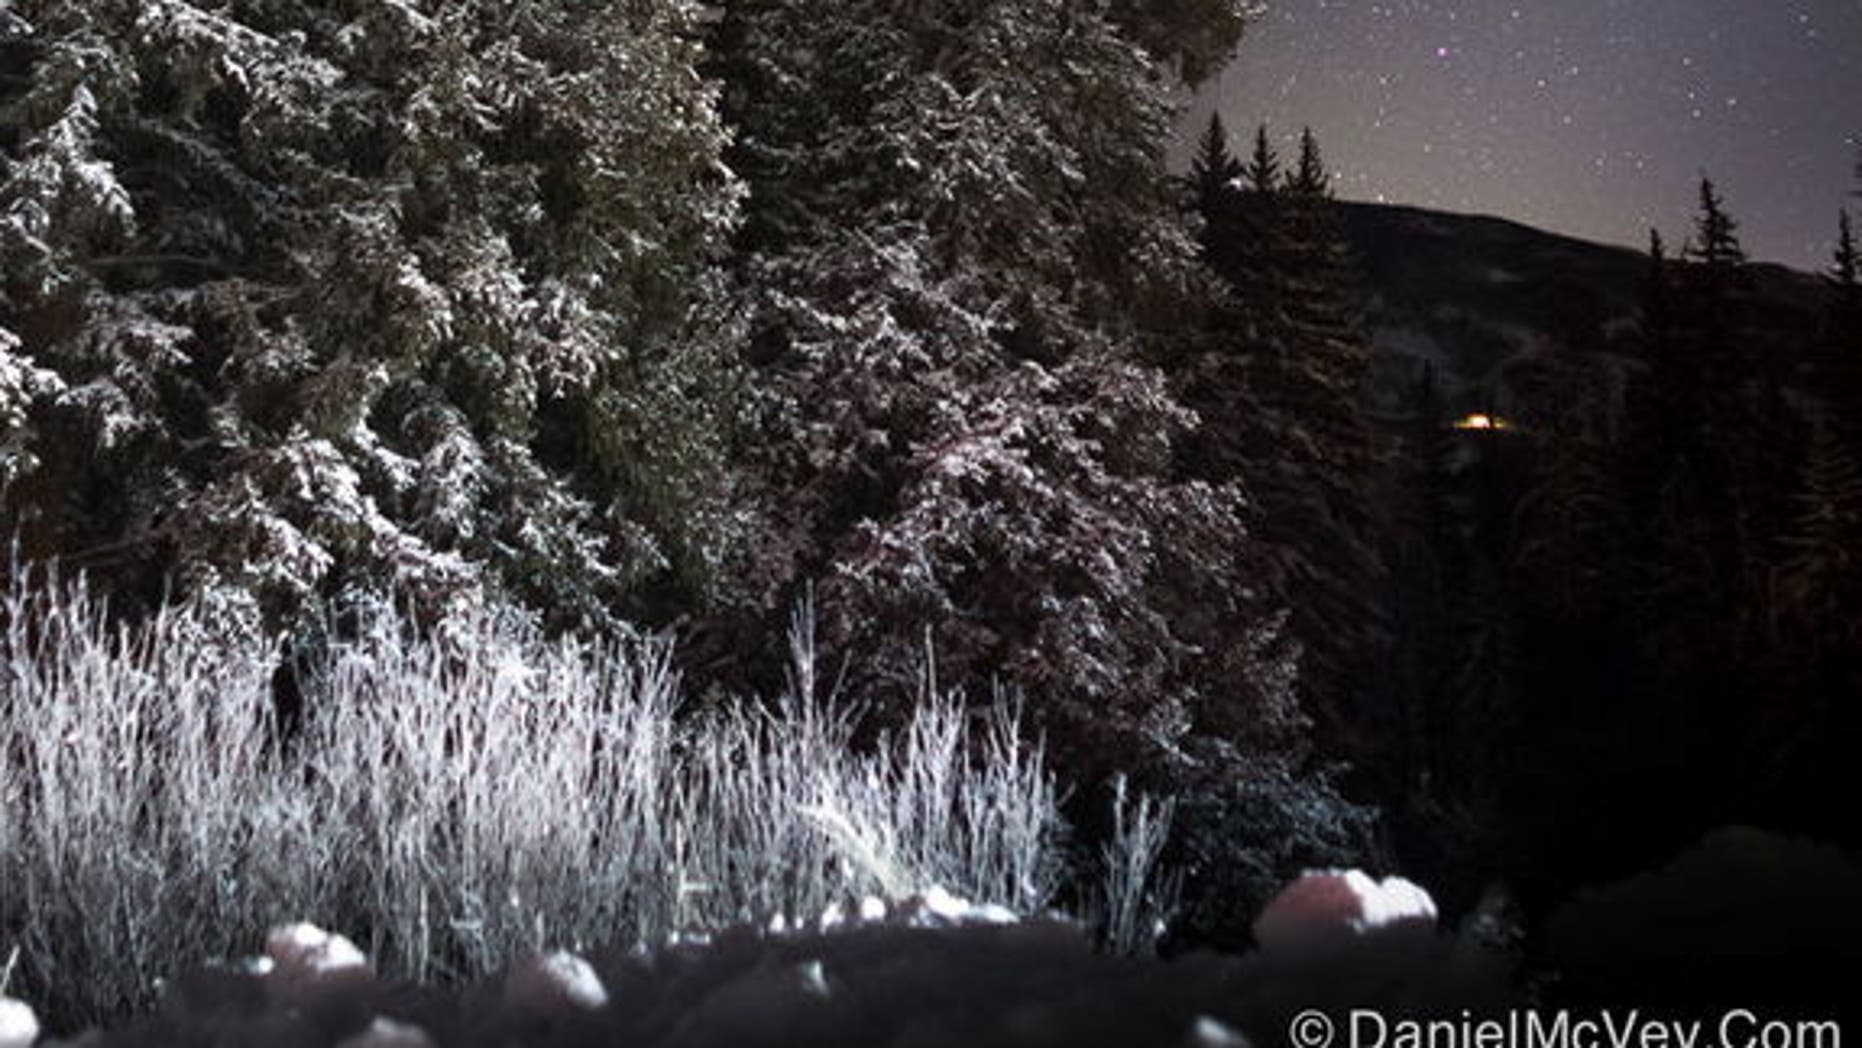 """Astrophotographer Daniel McVey sent in this photo of Orion taken in Colorado, Dec. 11, 2012. He writes: """"Snow covered trees and Orion high in the sky are sure signs that winter has arrived in Summit County, Colorado."""" This scene is actually com"""